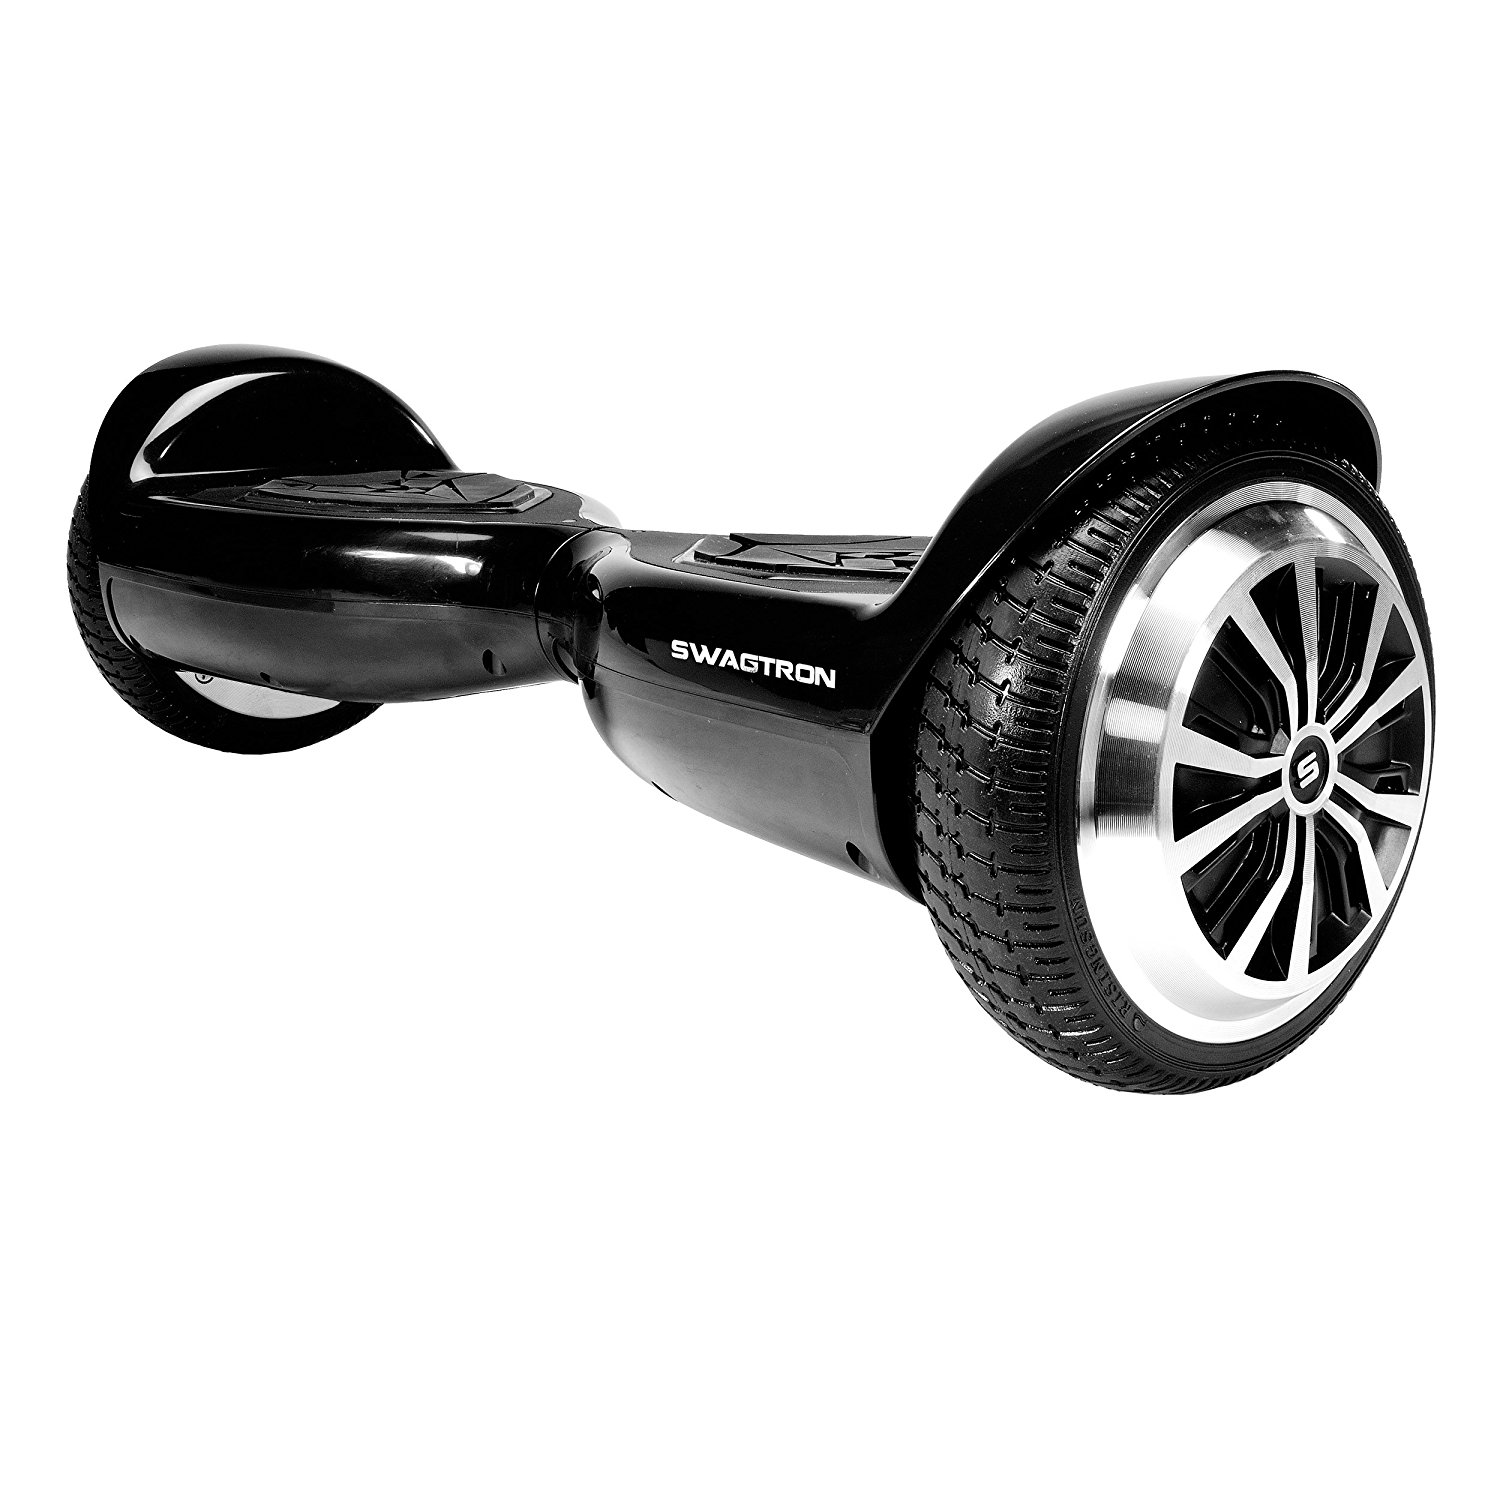 SWAGTRON T5 Entry Level Hoverboard for Kids and Young Adults; Optional Learning Mode; Patented Battery Protection (Black)